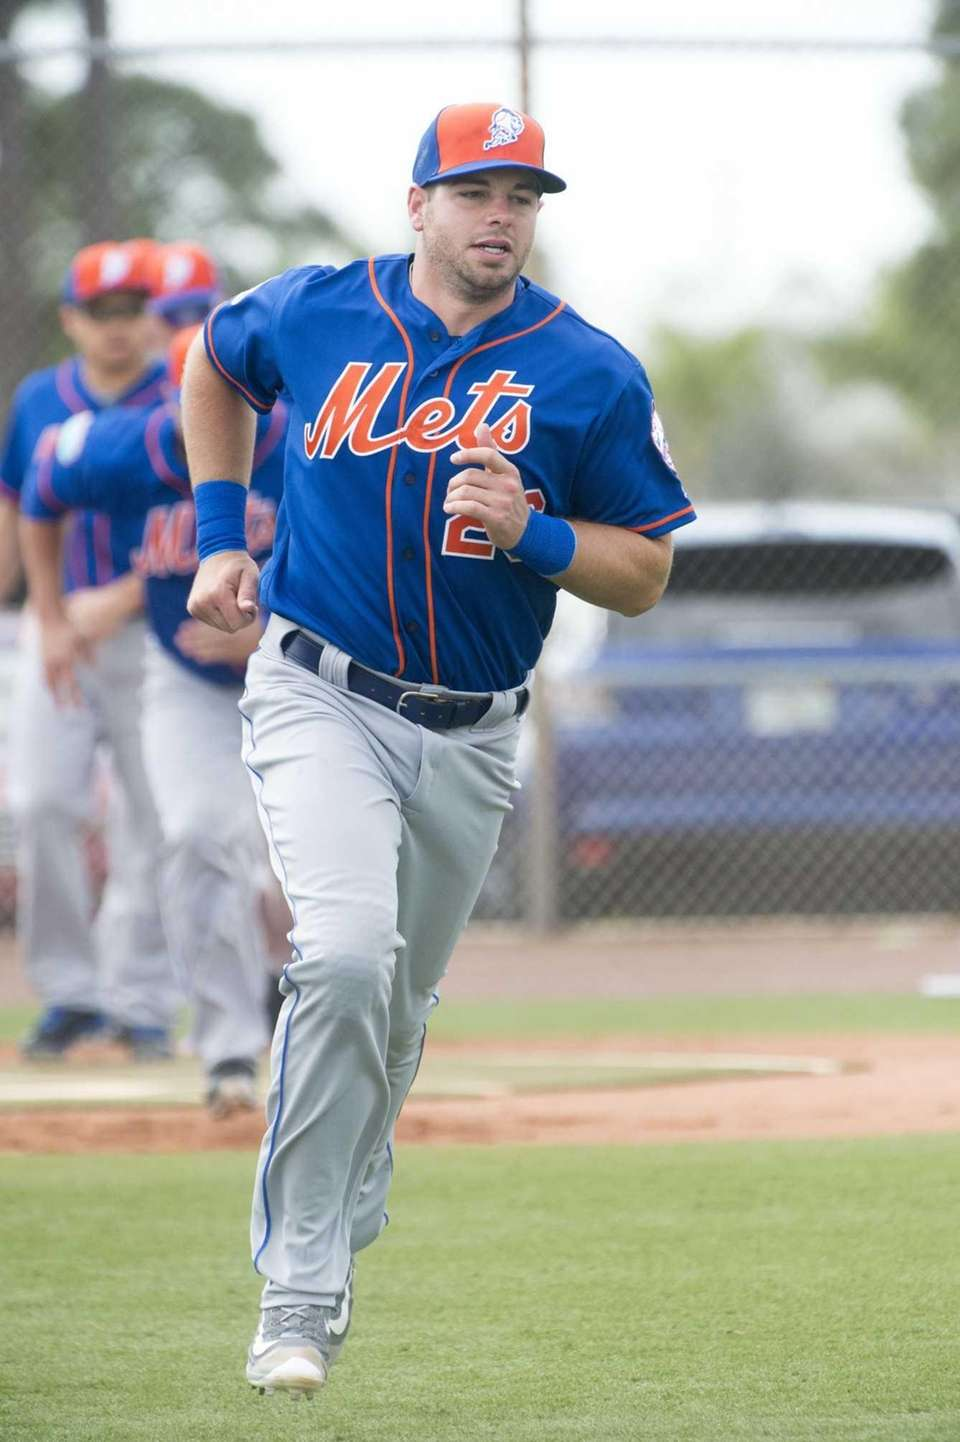 New York Mets catcher Kevin Plawecki does running